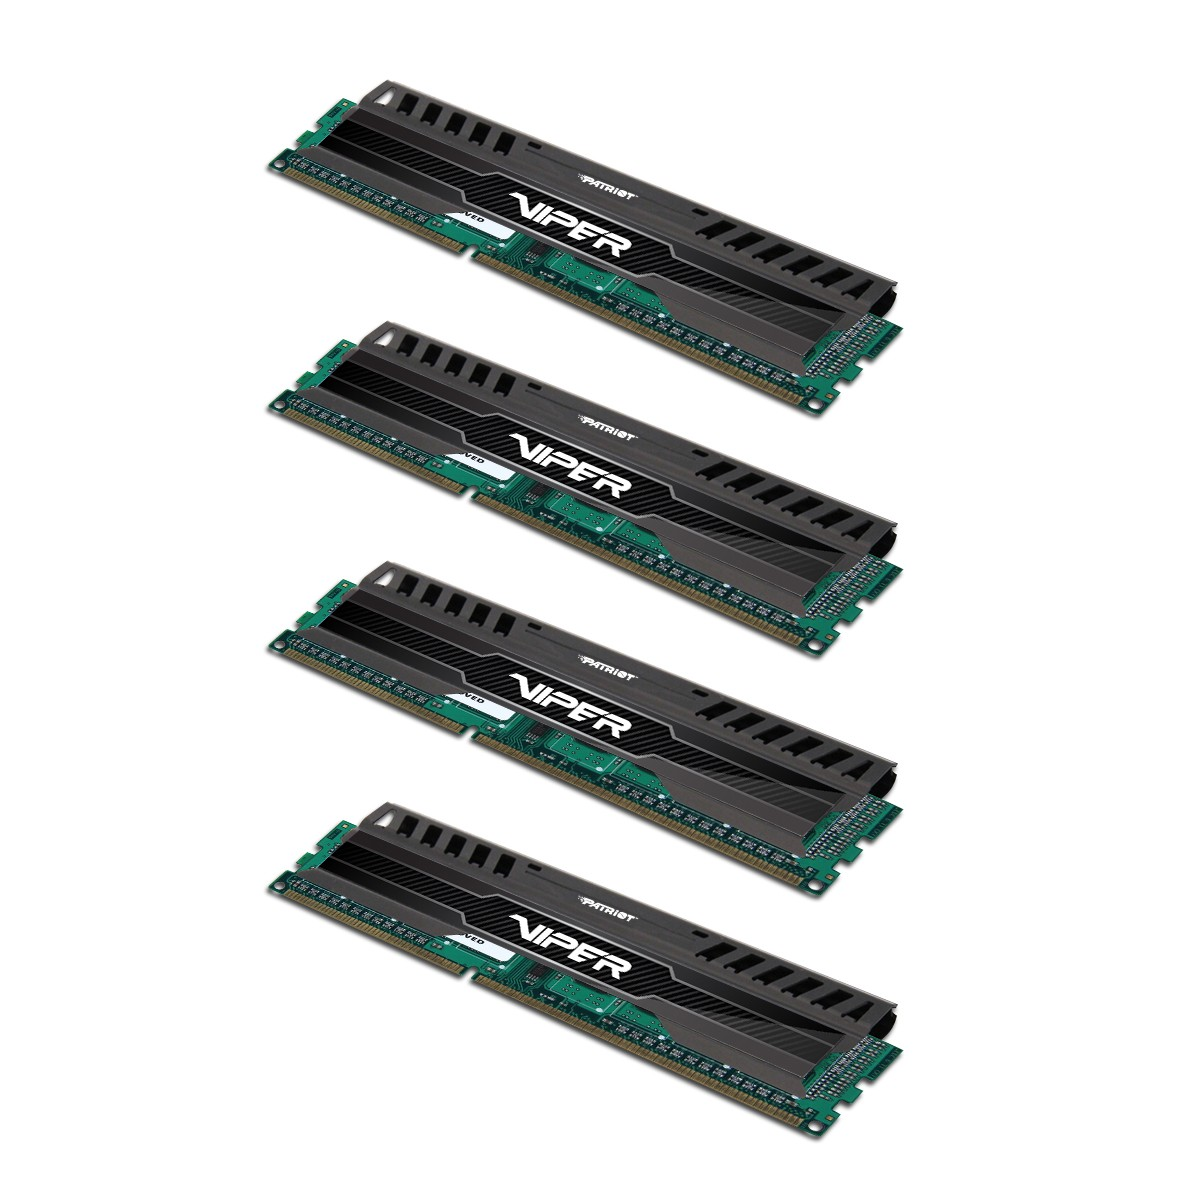 Memoria Viper 3 Black Mamba 16GB (4 x 4GB) DDR3 1600MHz Quad Channel Memory Kit PV316G160C9QK - Patriot